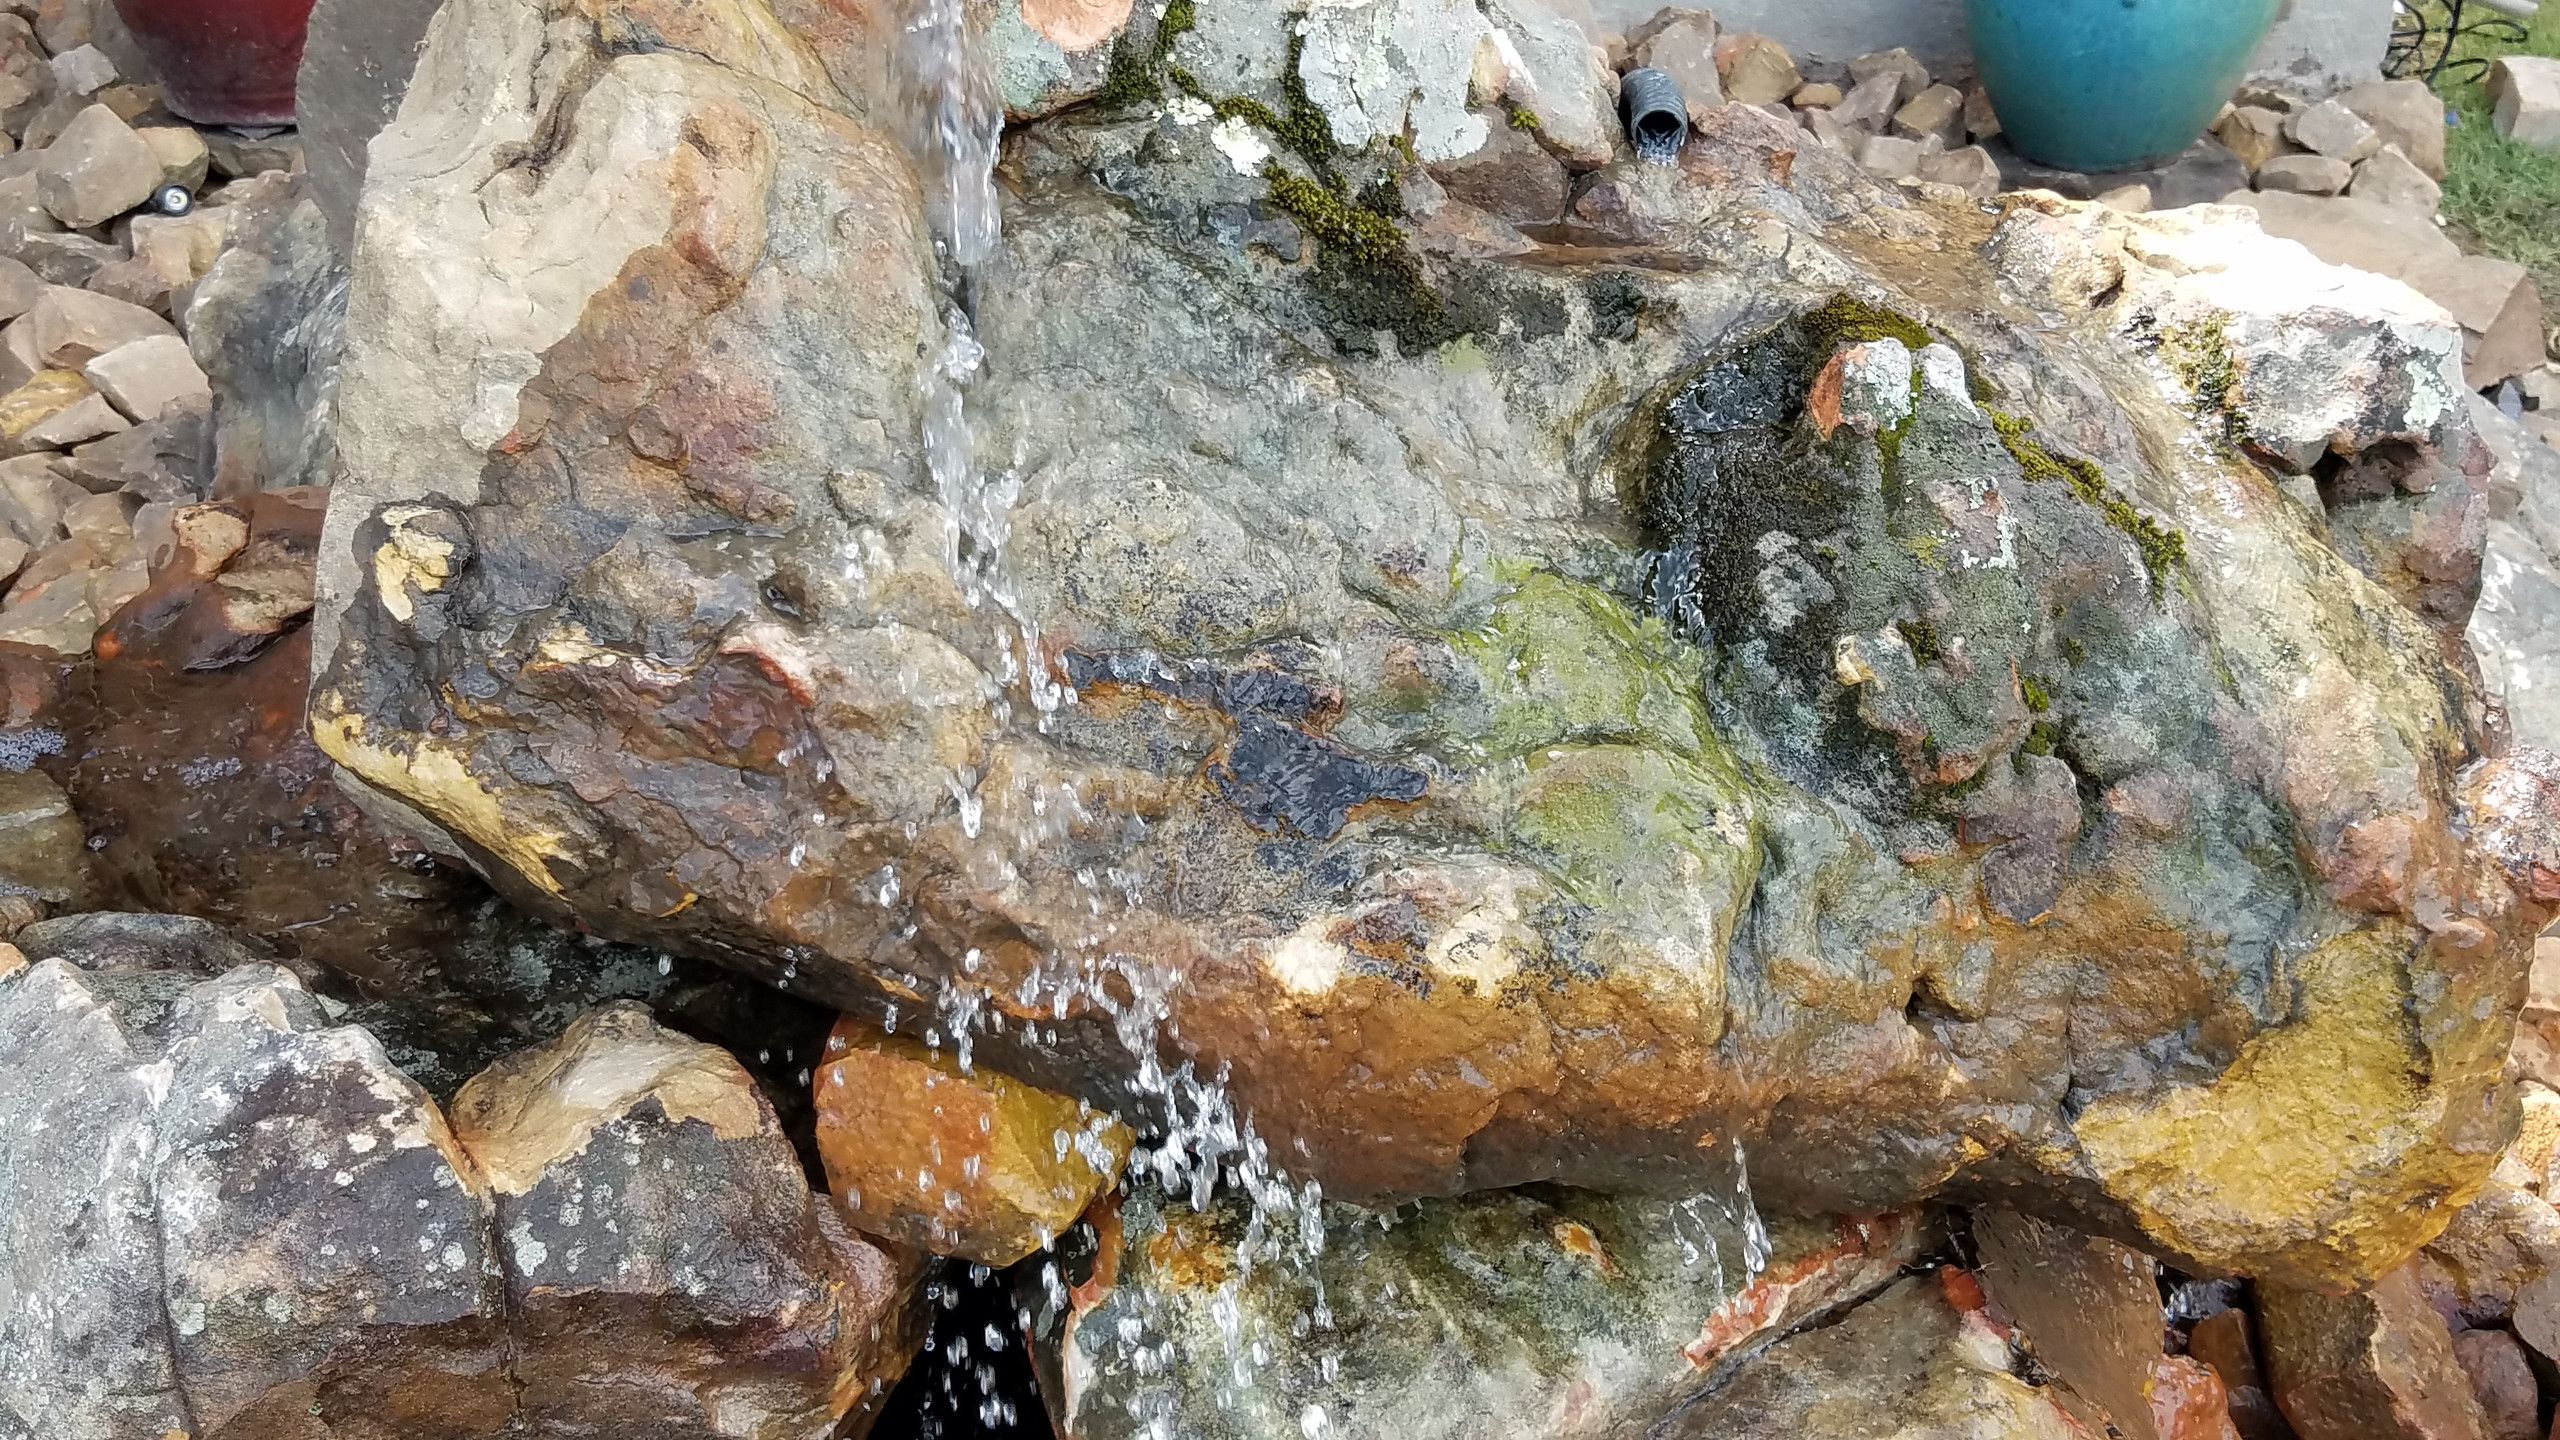 37-Close Up of Water Spillage